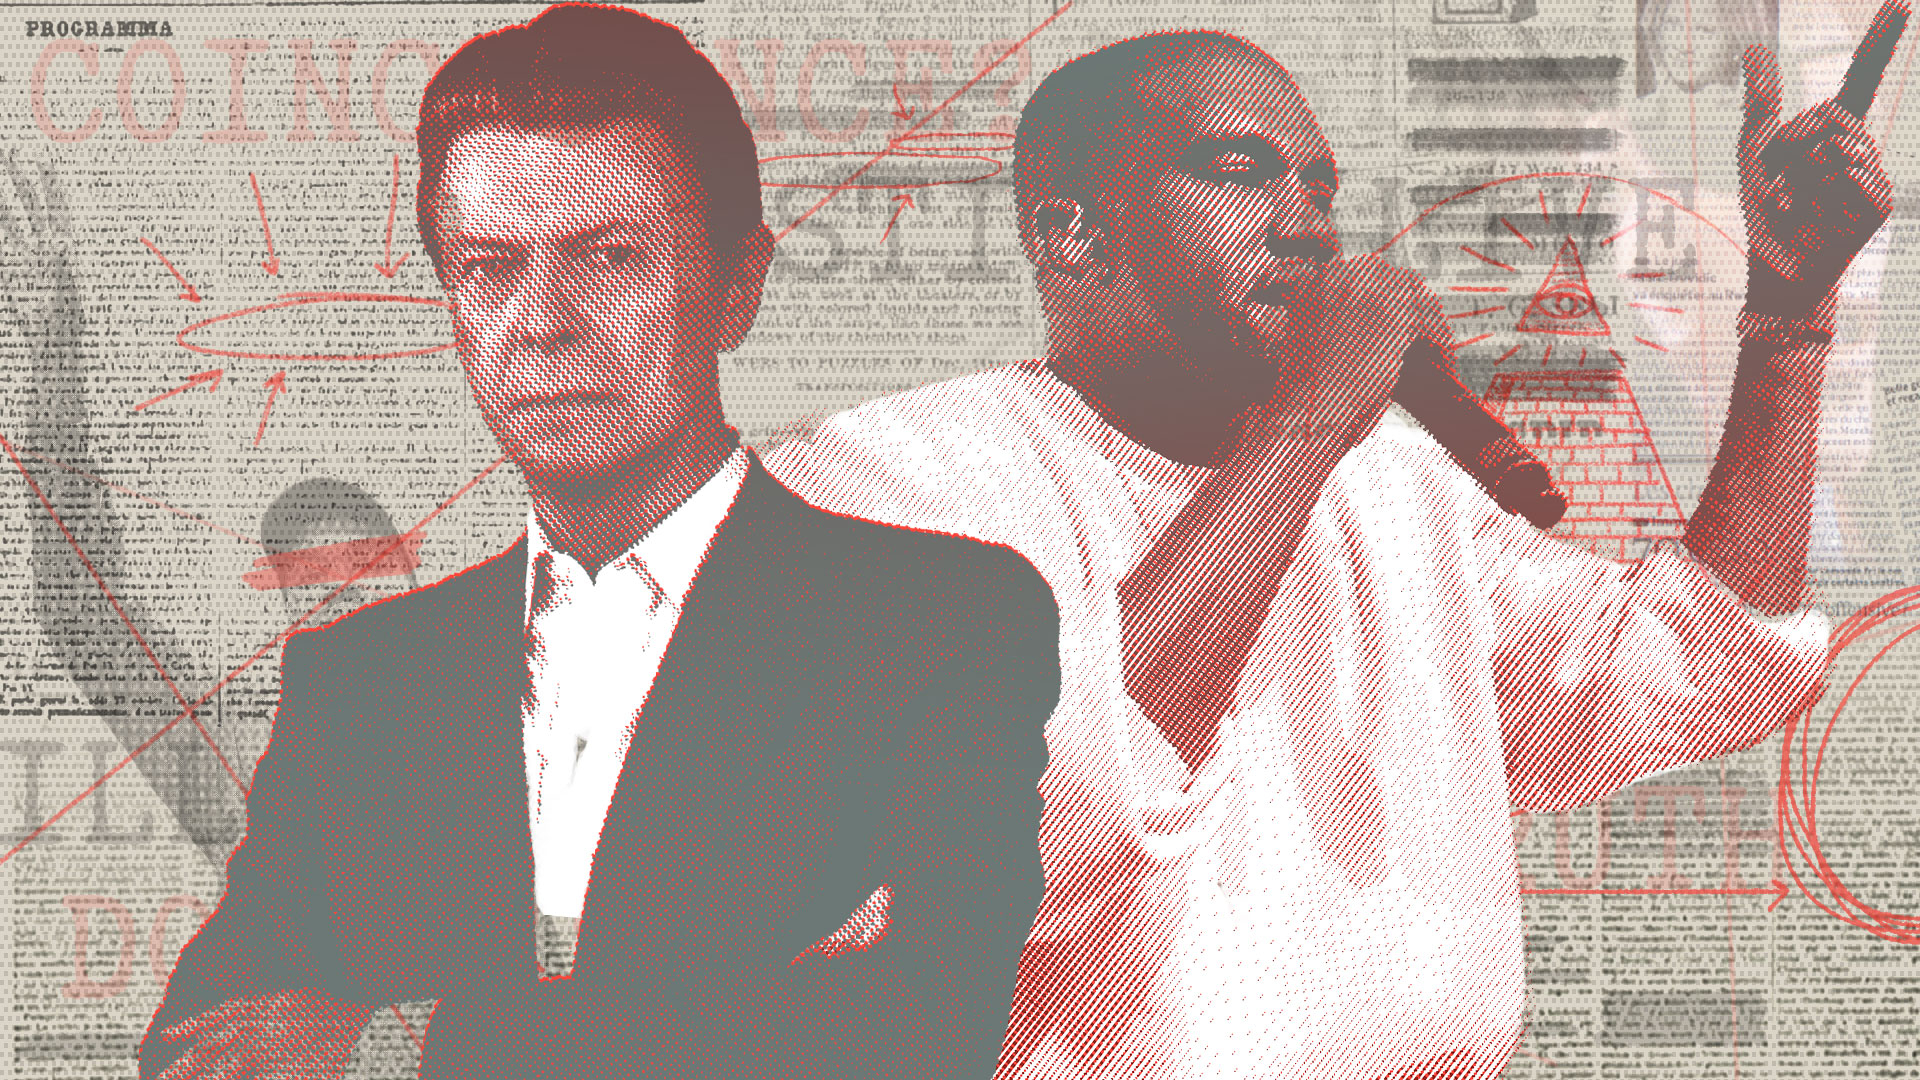 e591d429a Kanye West and David Bowie: Music's Most WTF Conspiracy Theories, Explained